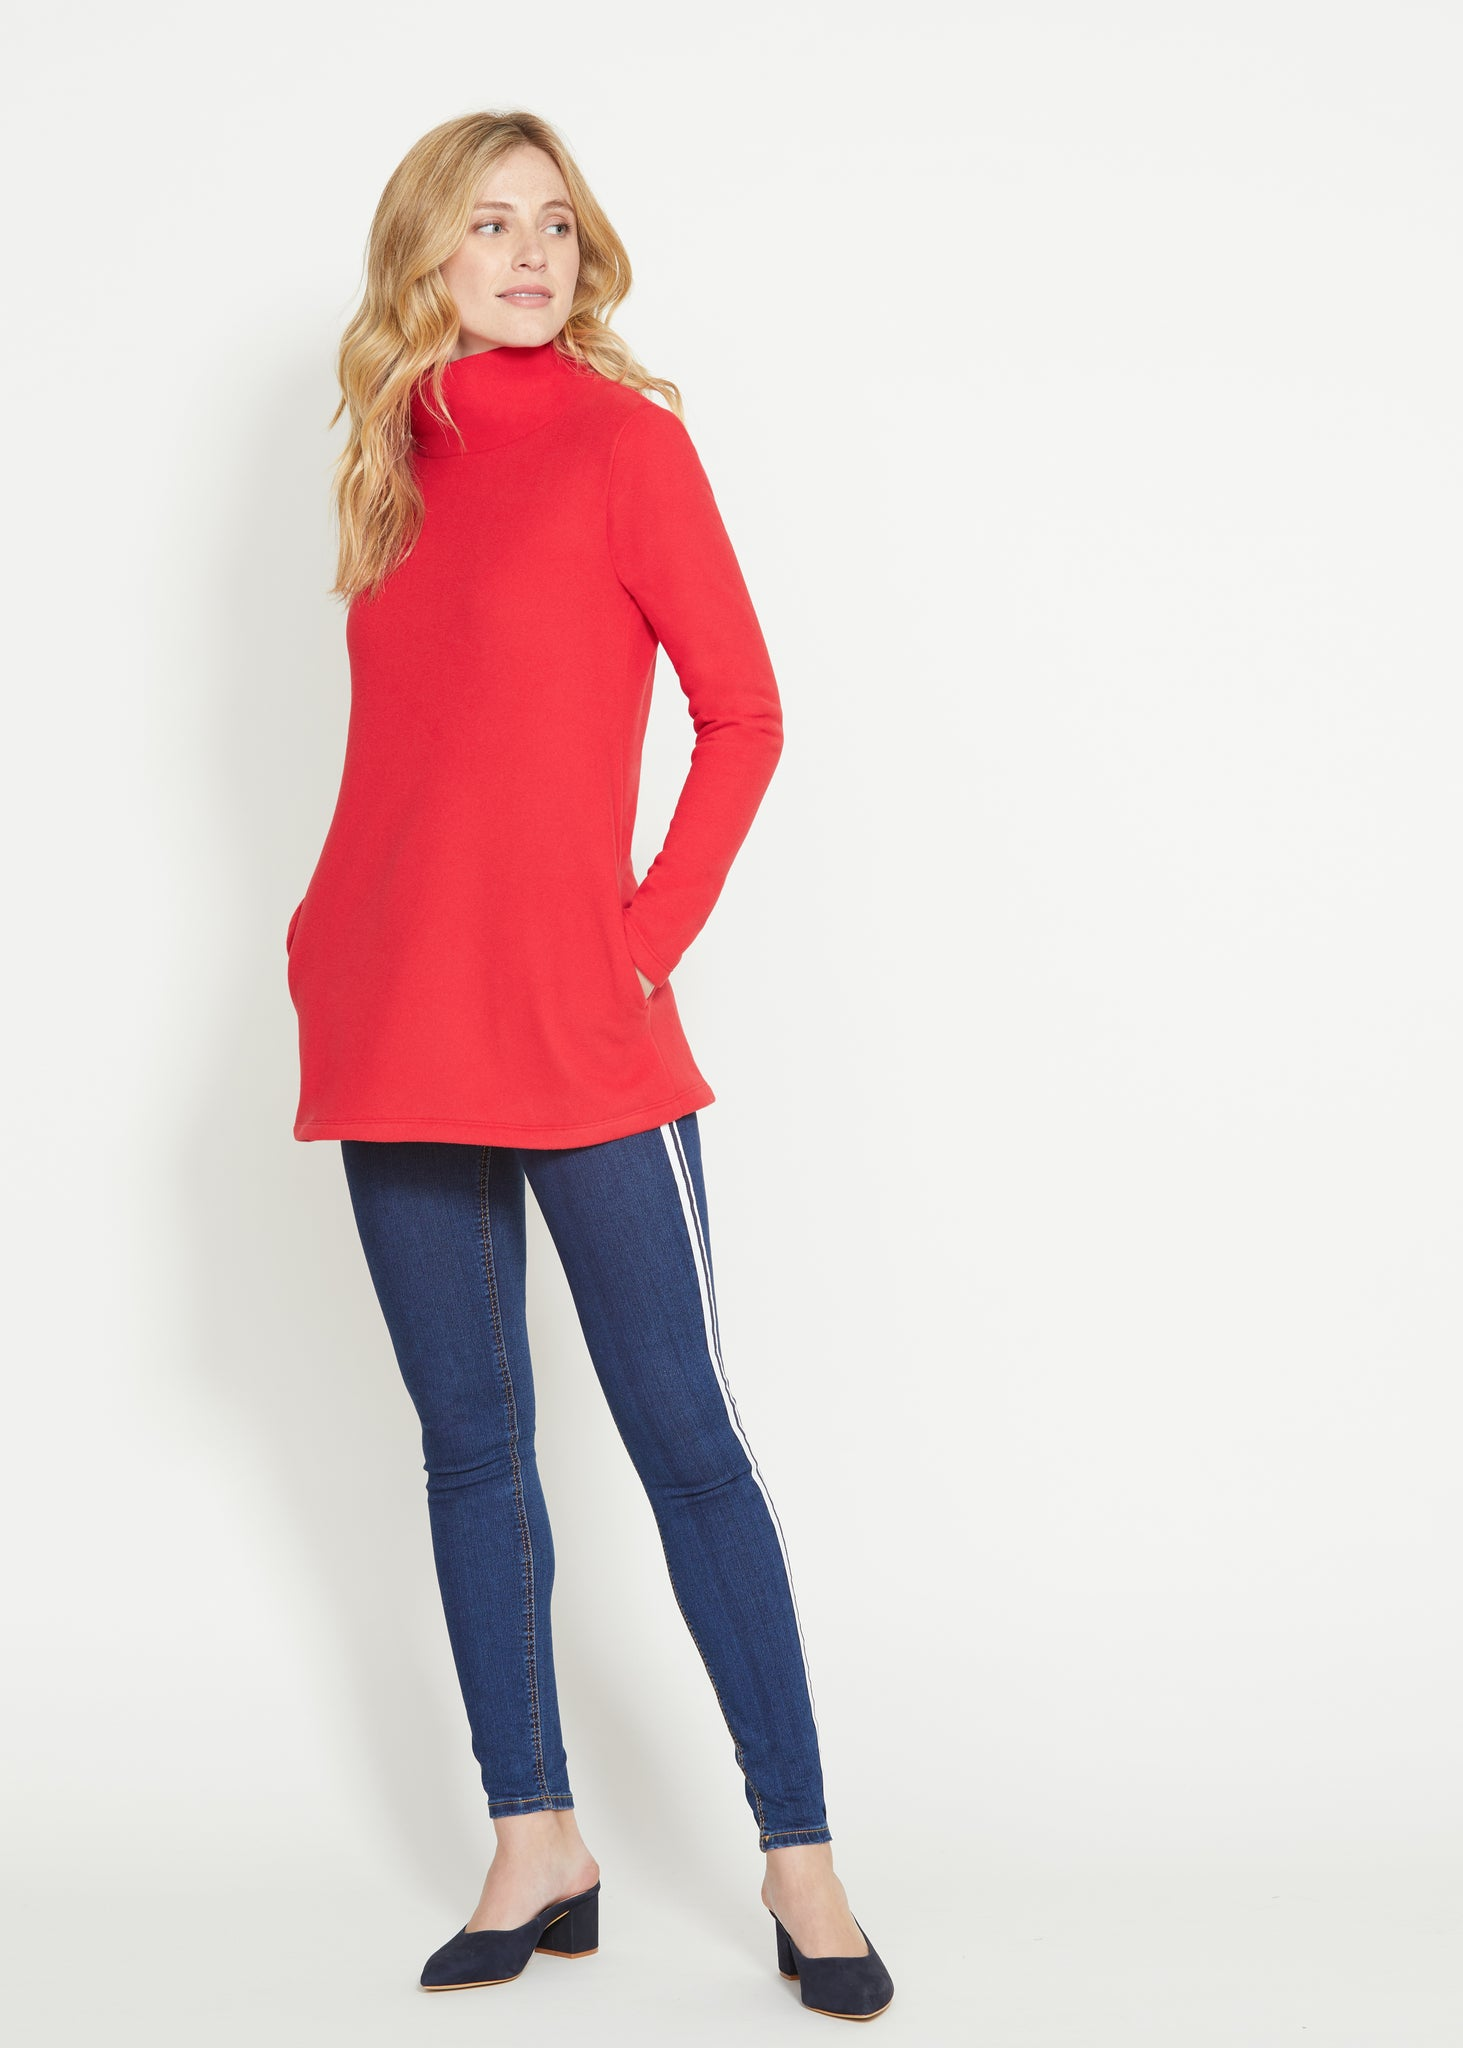 dudley stephens cobble hill turtleneck in red